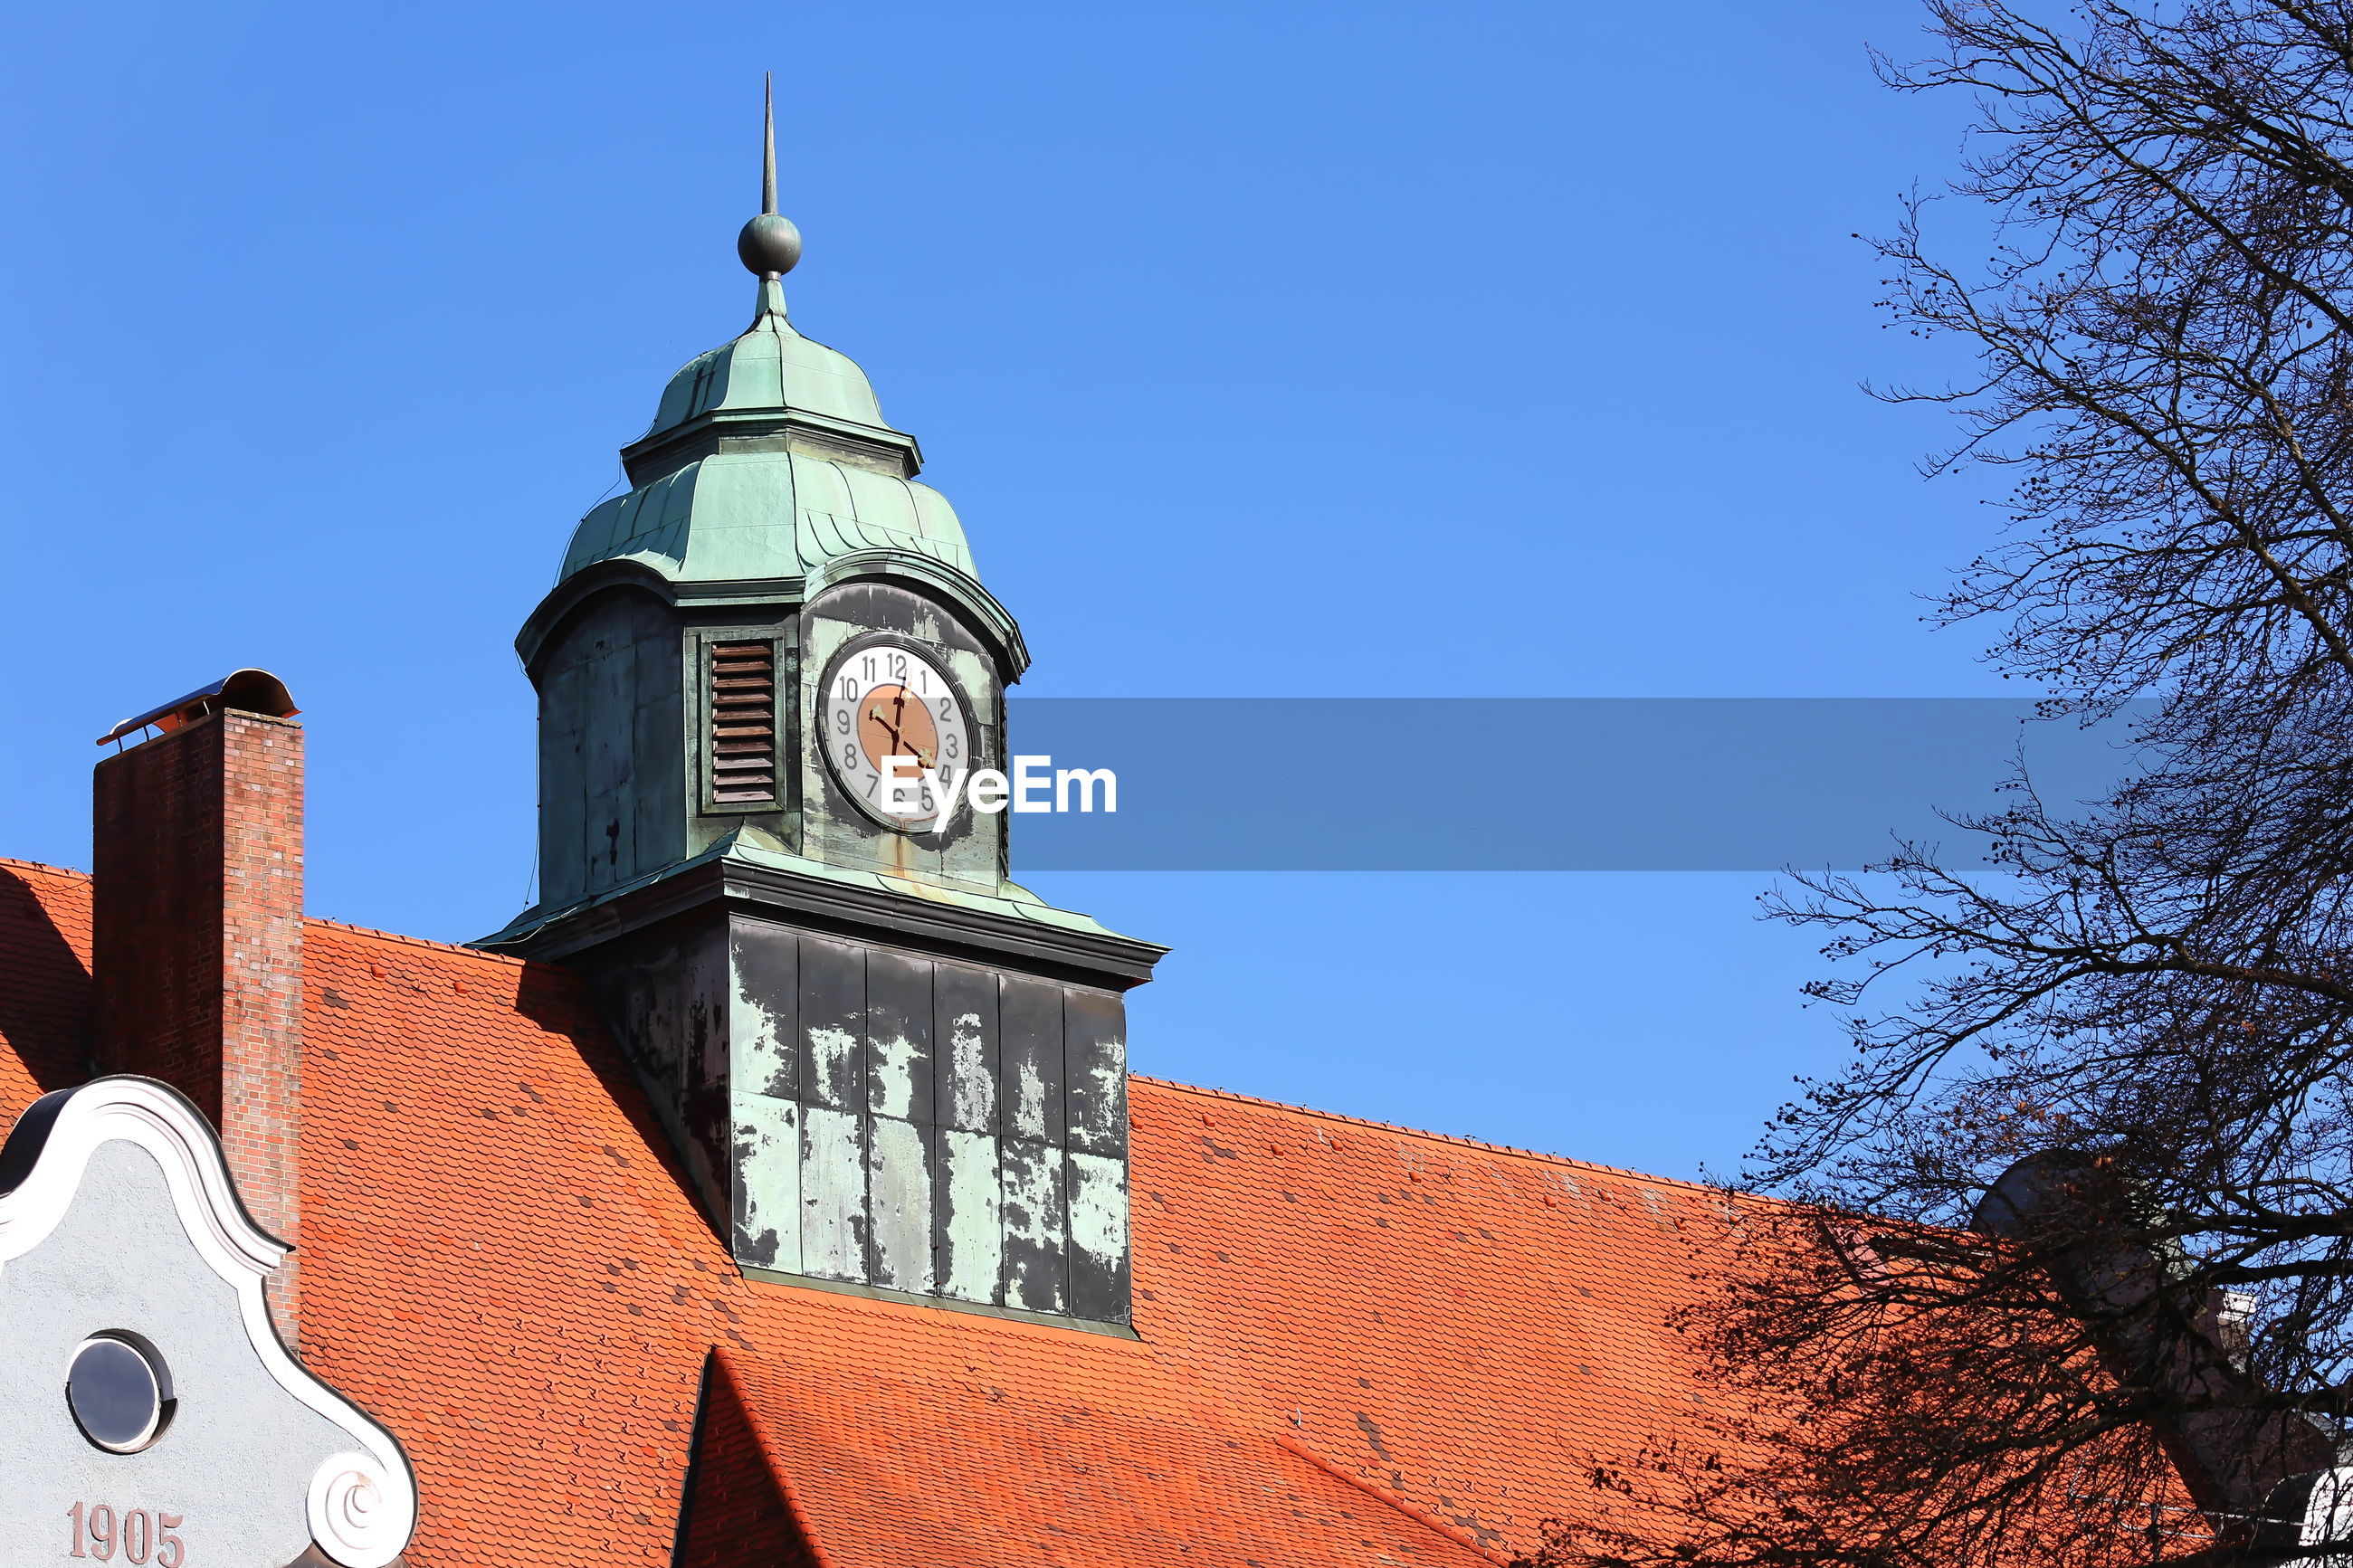 LOW ANGLE VIEW OF CLOCK TOWER AND BUILDINGS AGAINST CLEAR BLUE SKY